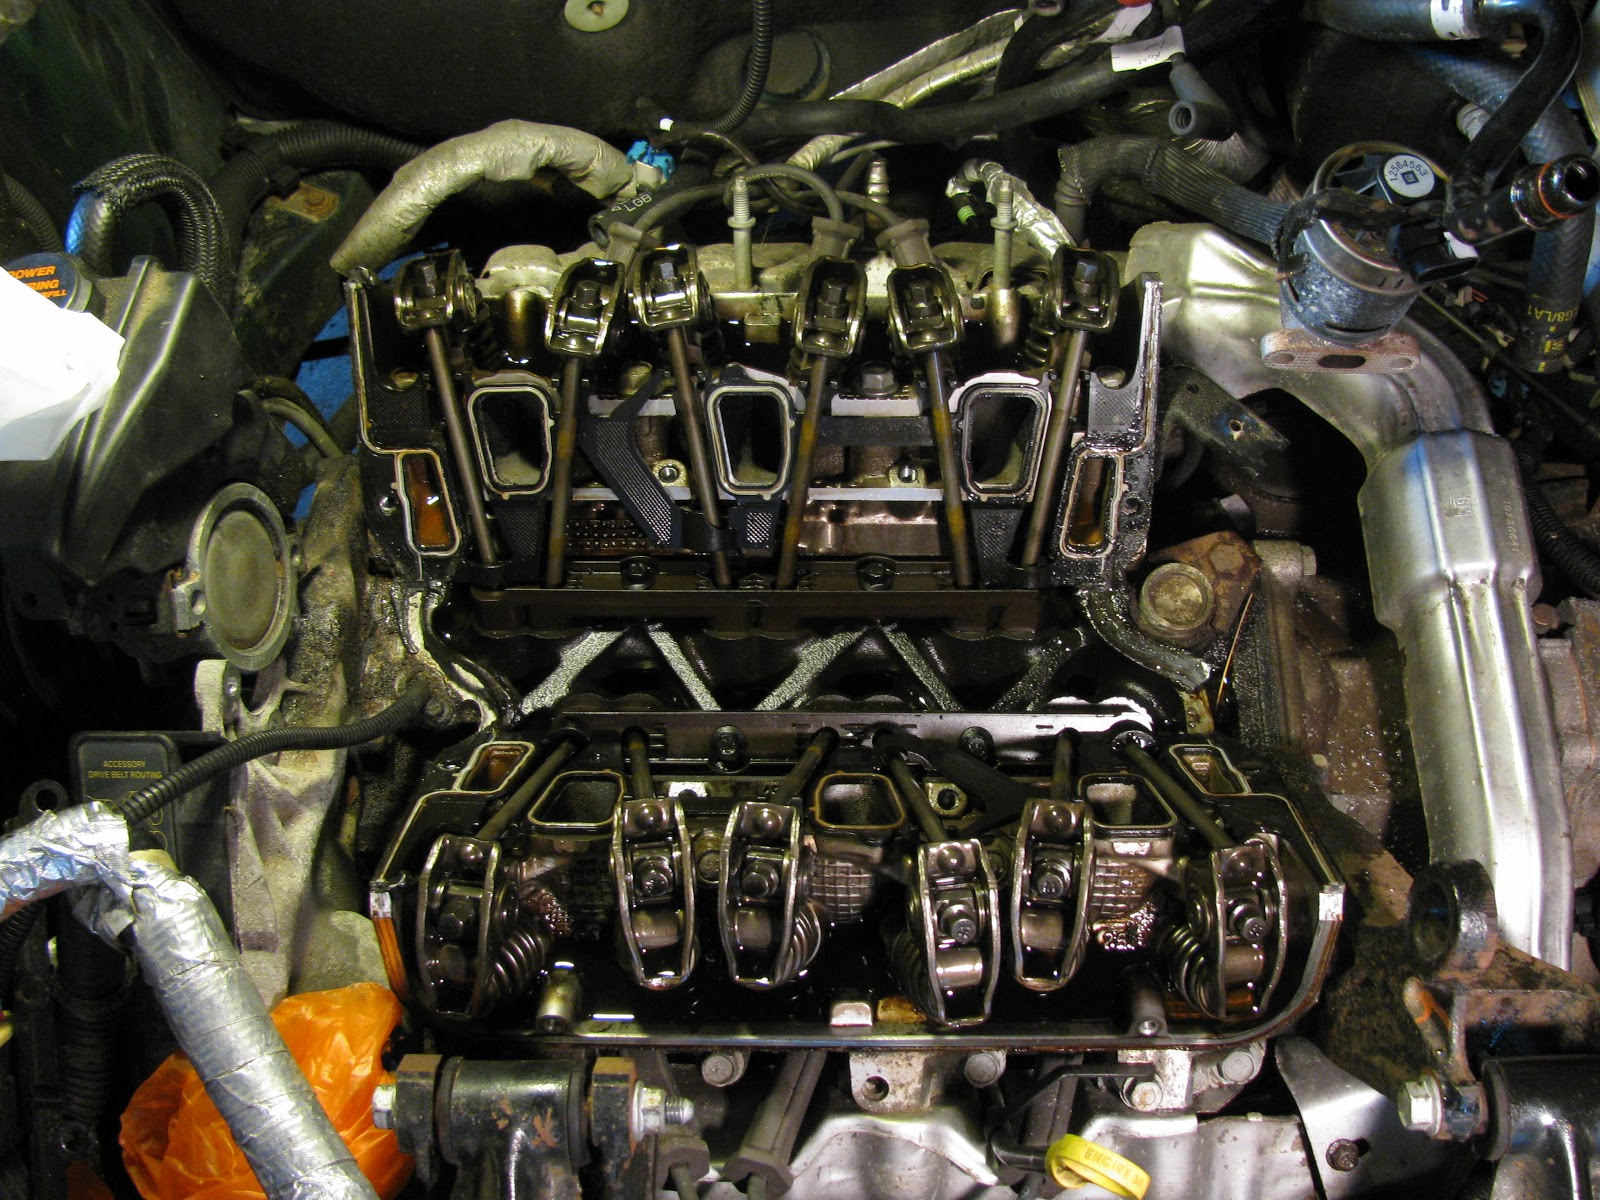 97 Chevy Engine Diagram 3 1 Liter Wiring Library Gm Idle Air Control Valve View Of The 31 With Lower Intake Removed